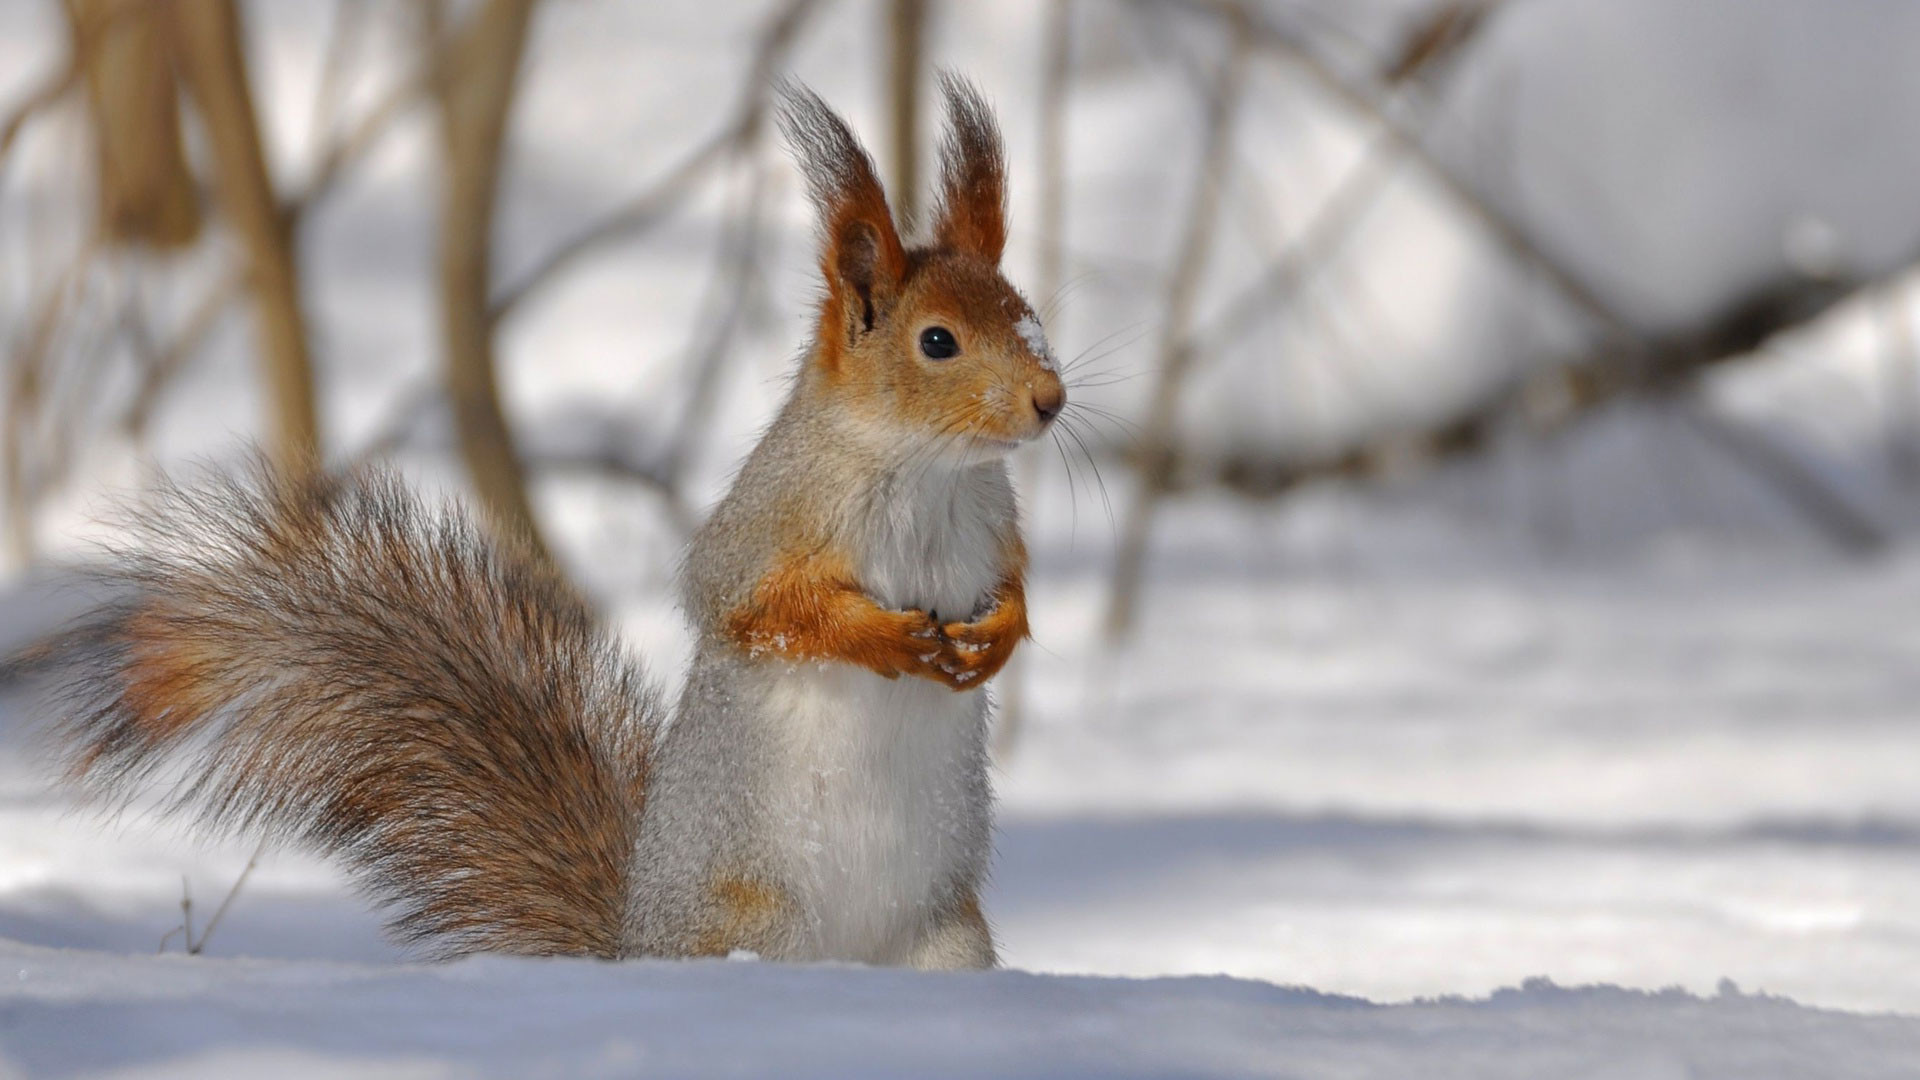 Animal winter desktop wallpaper 59 images - Animal 1920x1080 ...